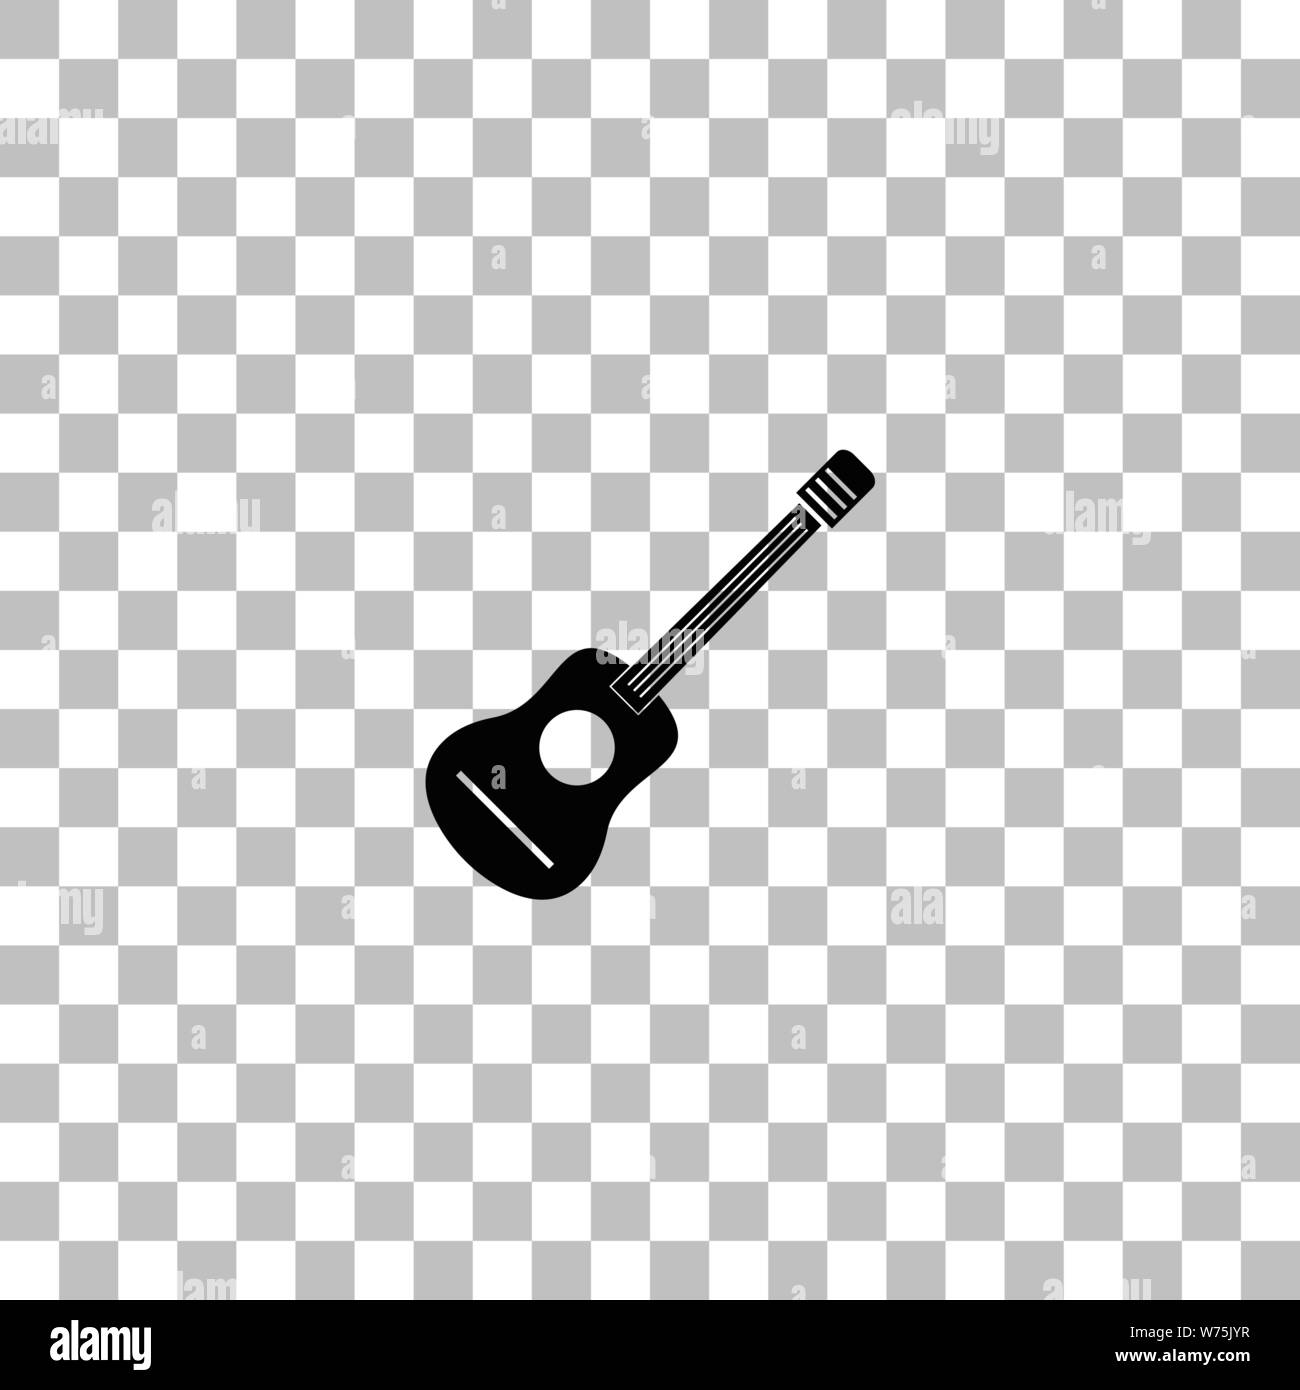 Acoustic Guitar Black Flat Icon On A Transparent Background Pictogram For Your Project Stock Vector Image Art Alamy